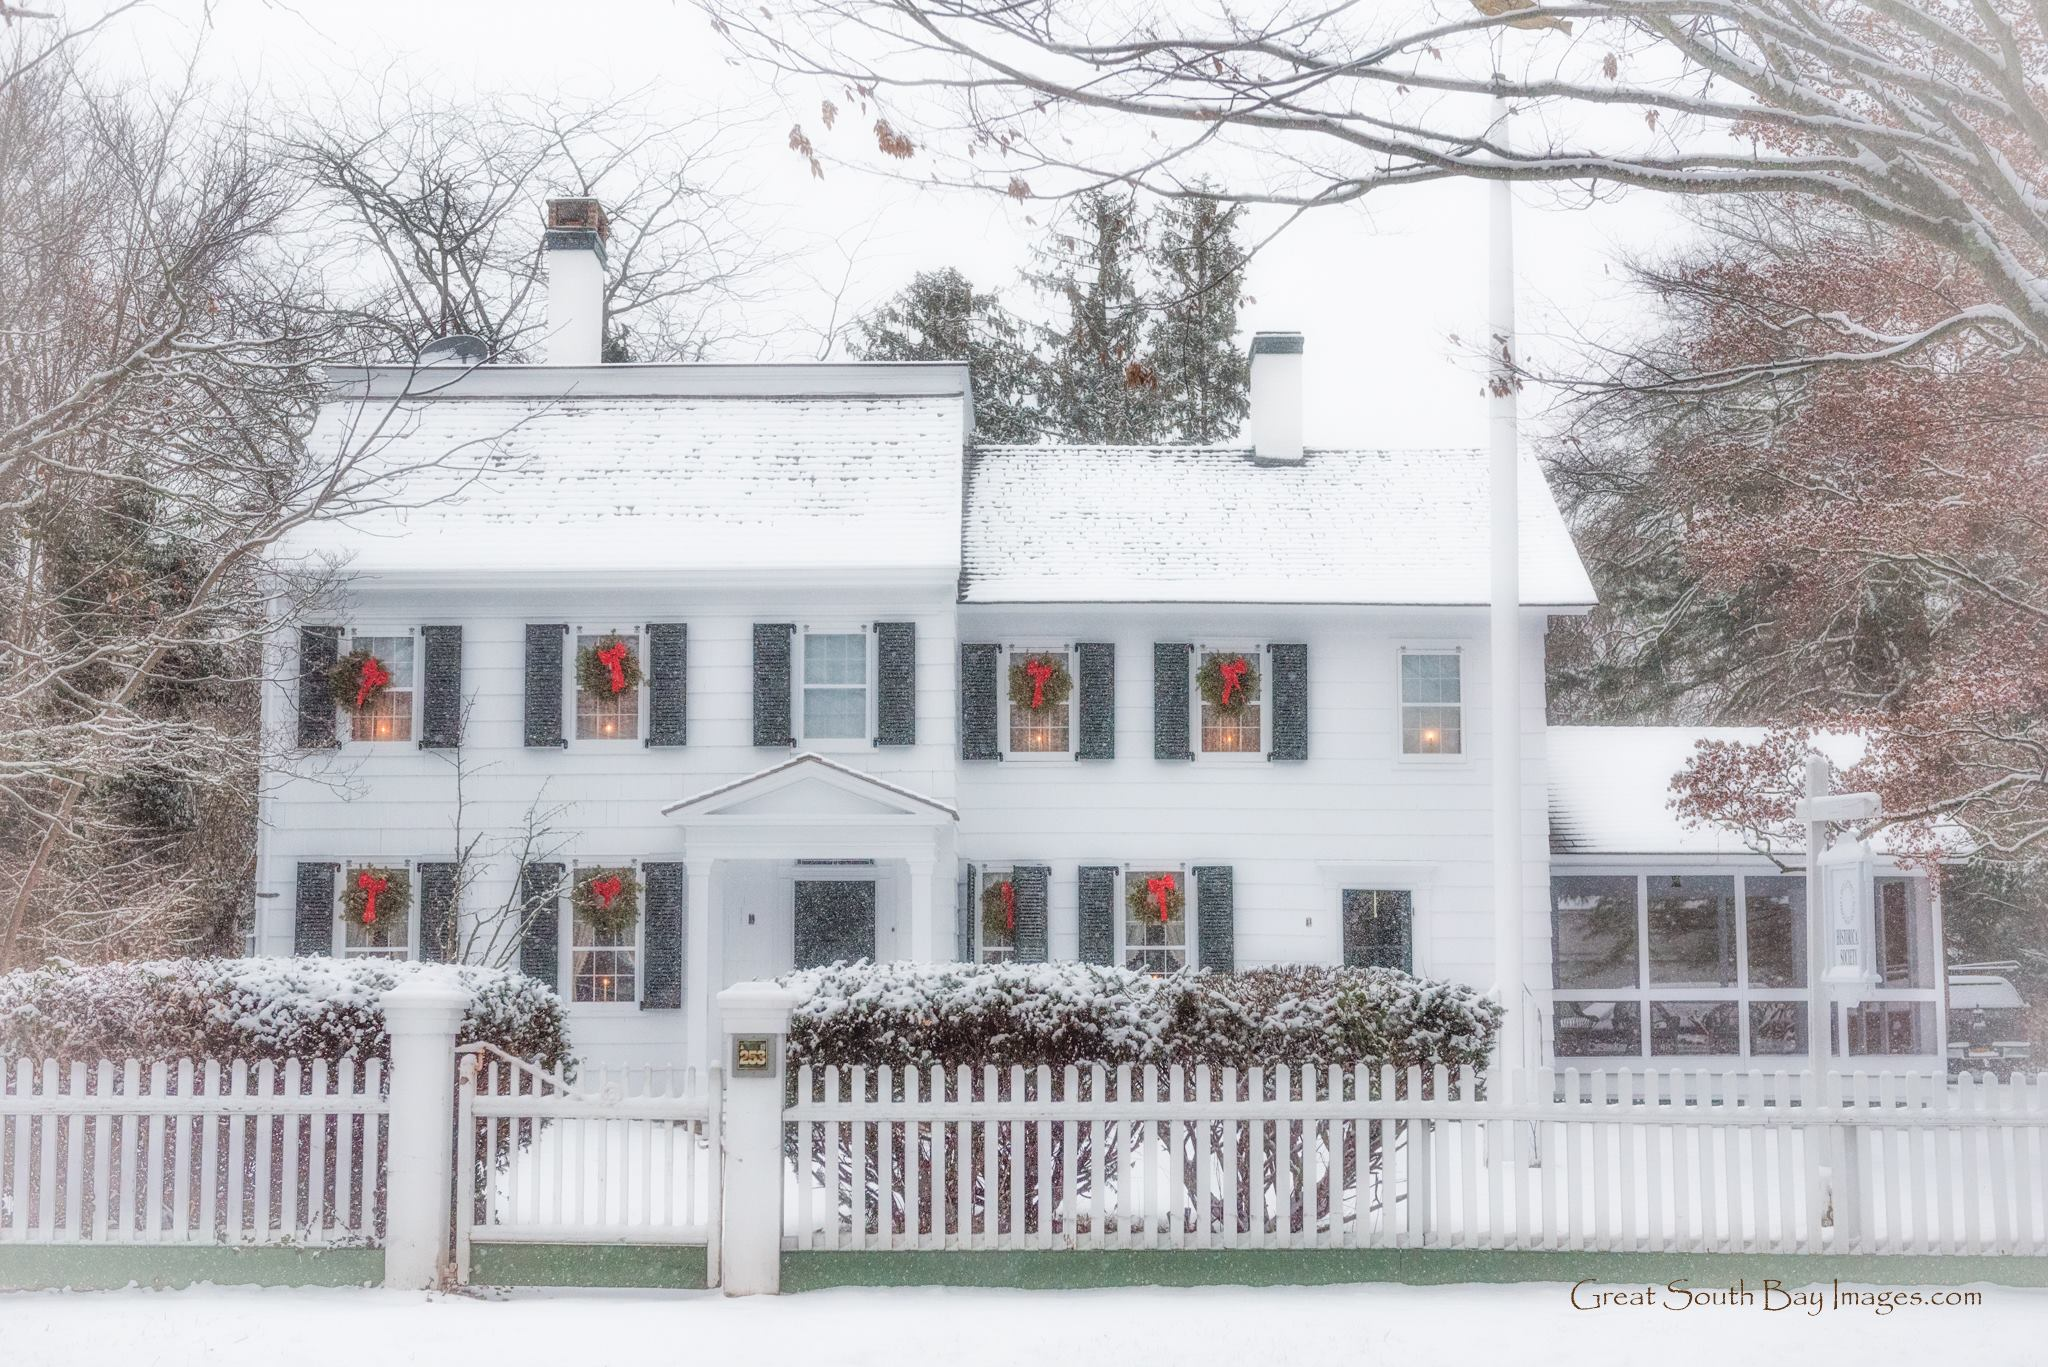 Architectural Review Board - February 27, 2020 at 7:00 pm  - Bellport Community Center